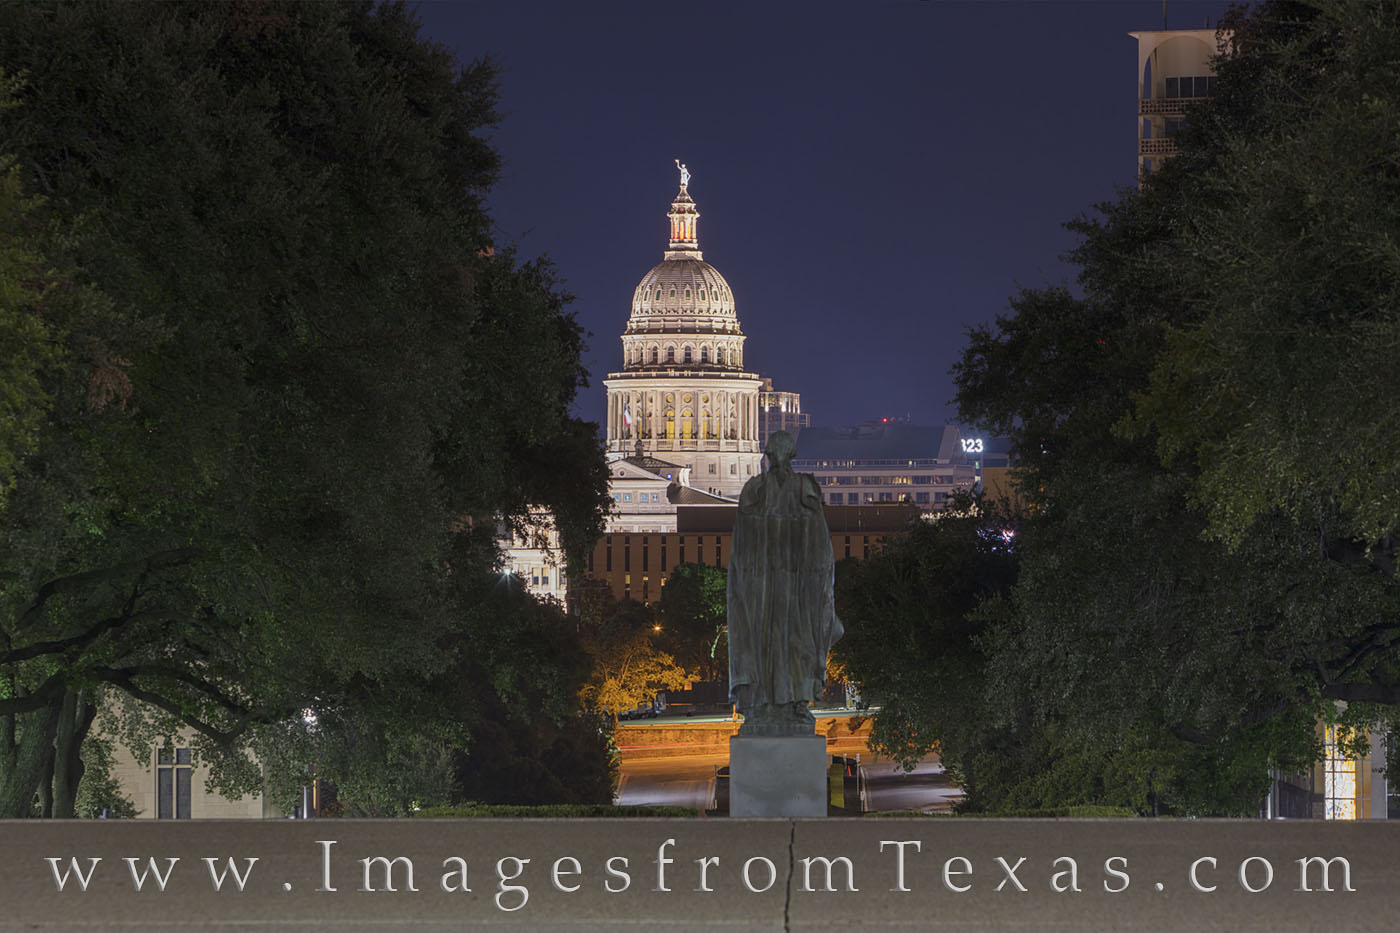 state capitol, texas capitol, george washington, UT campus, University of Texas, south mall, 40 acres, Texas statues, photo